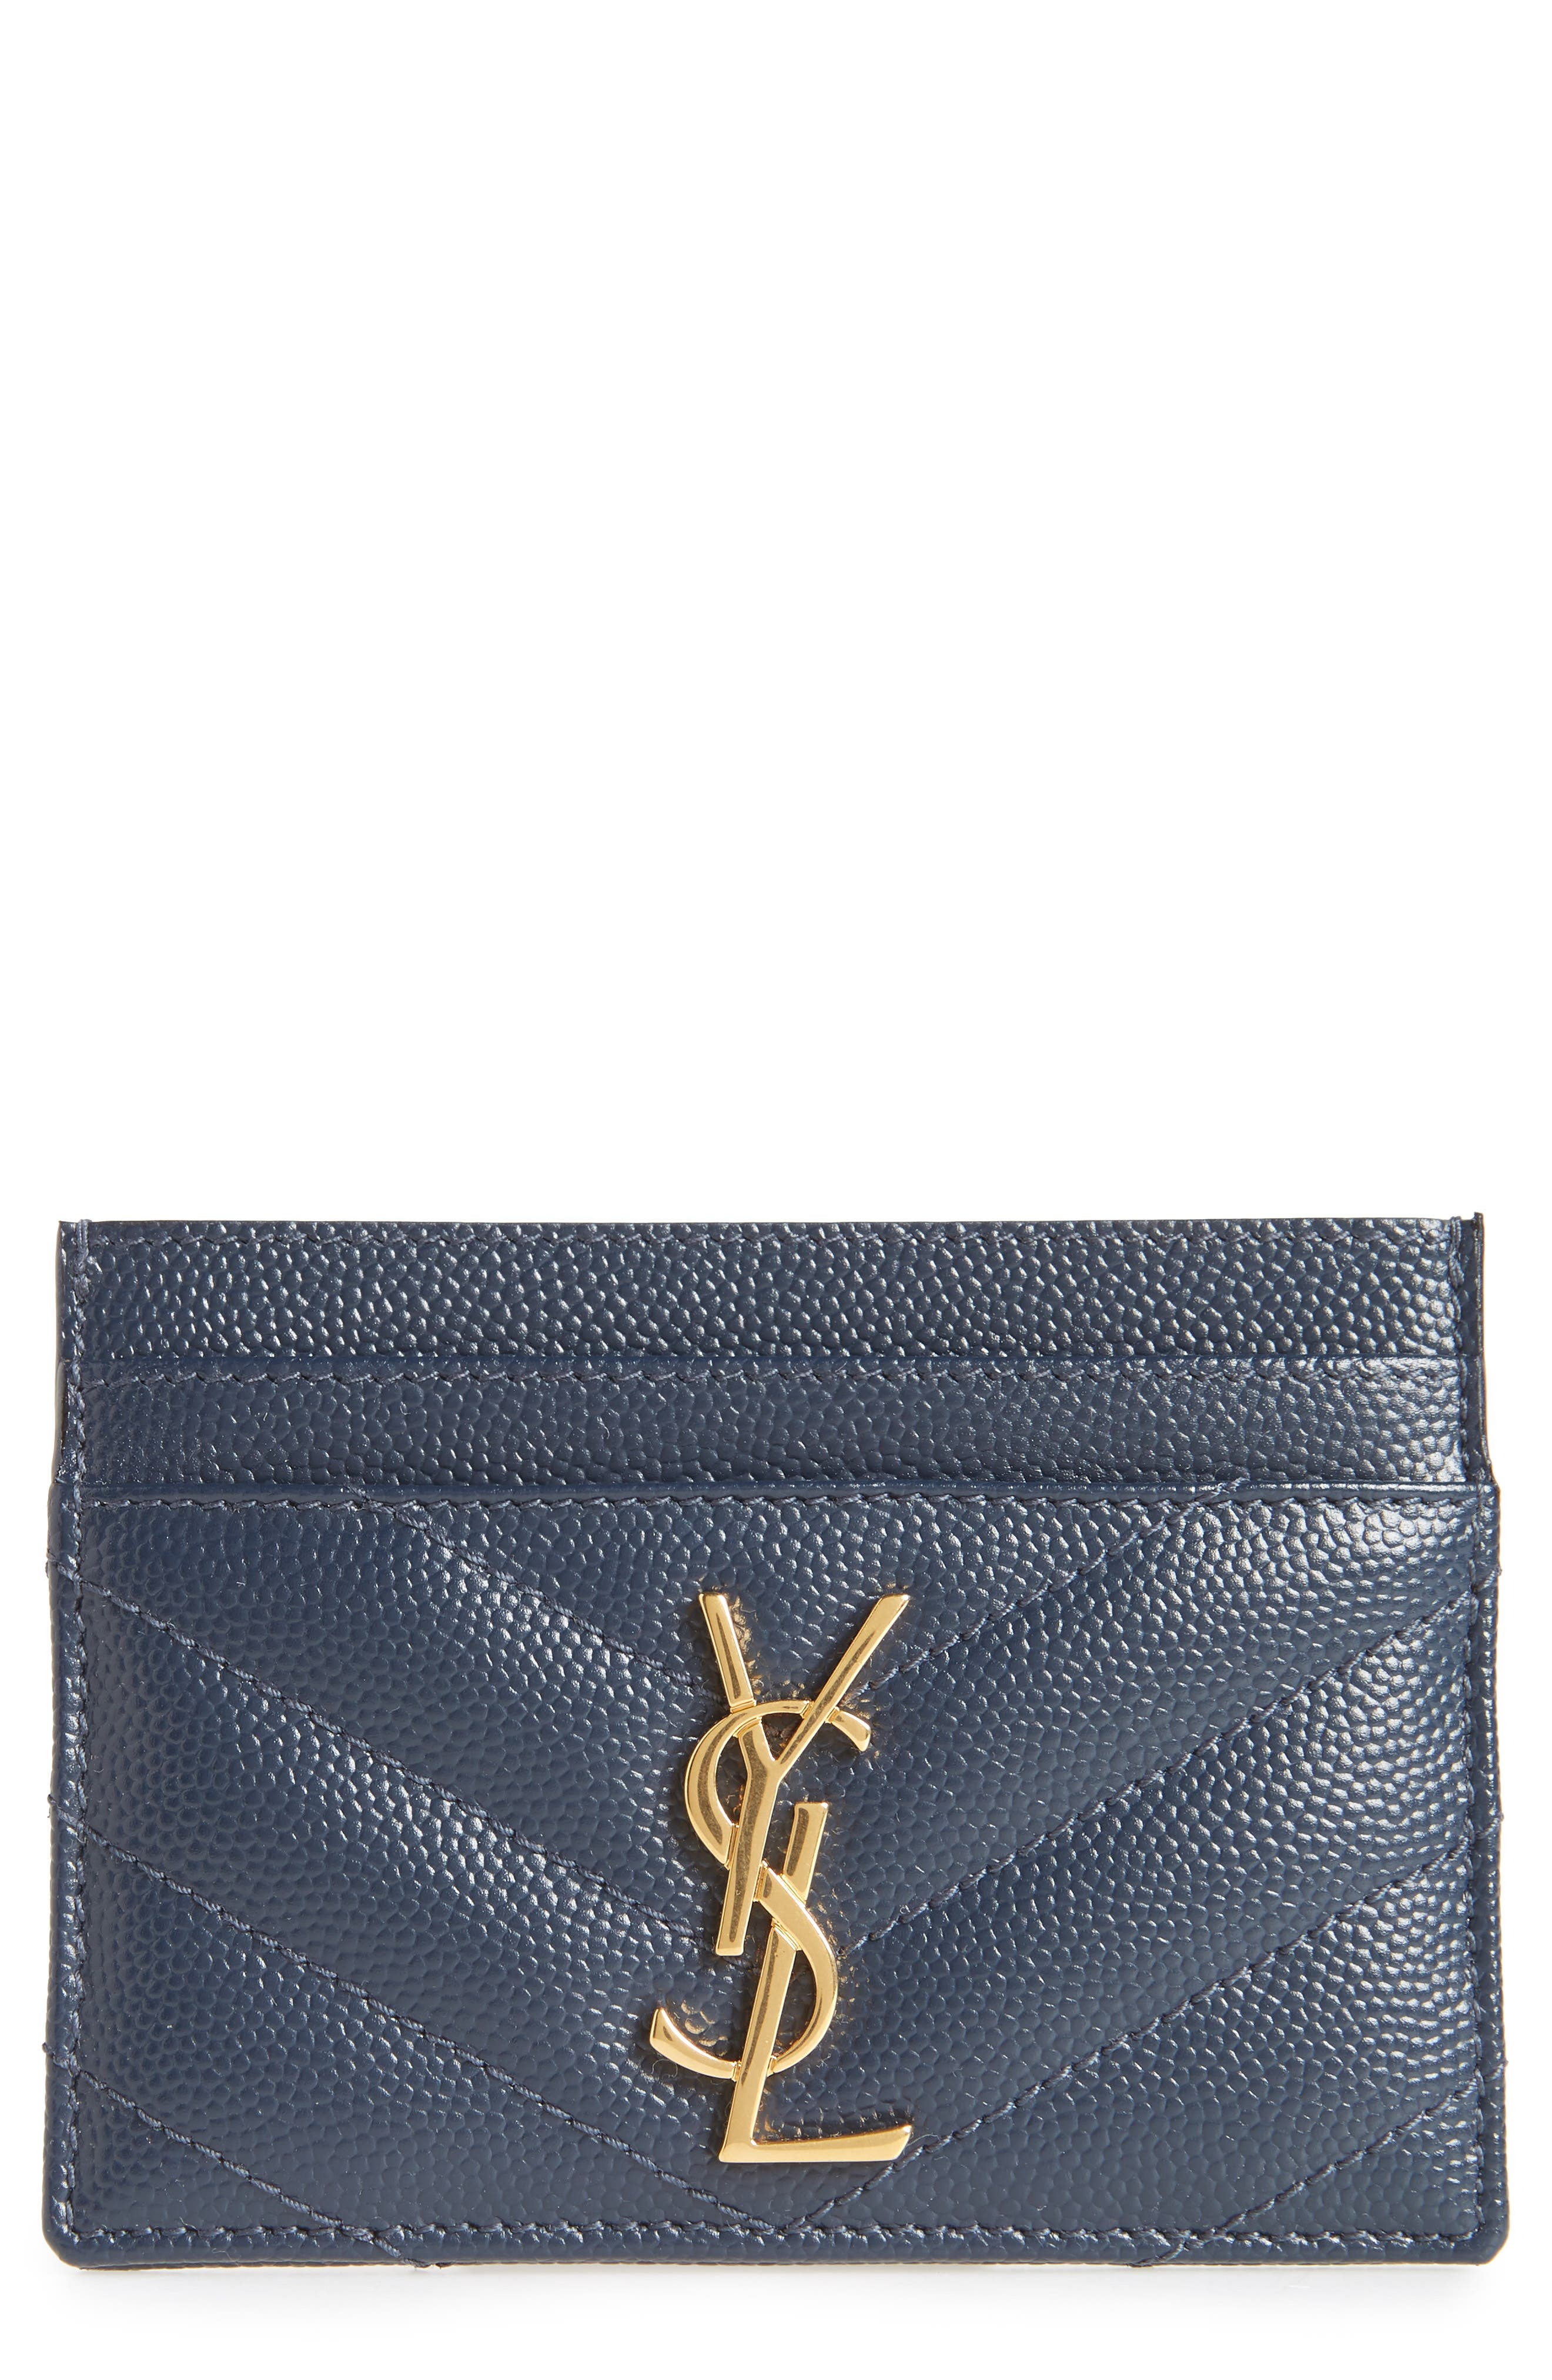 Monogram Quilted Leather Credit Card Case,                         Main,                         color, NAVY